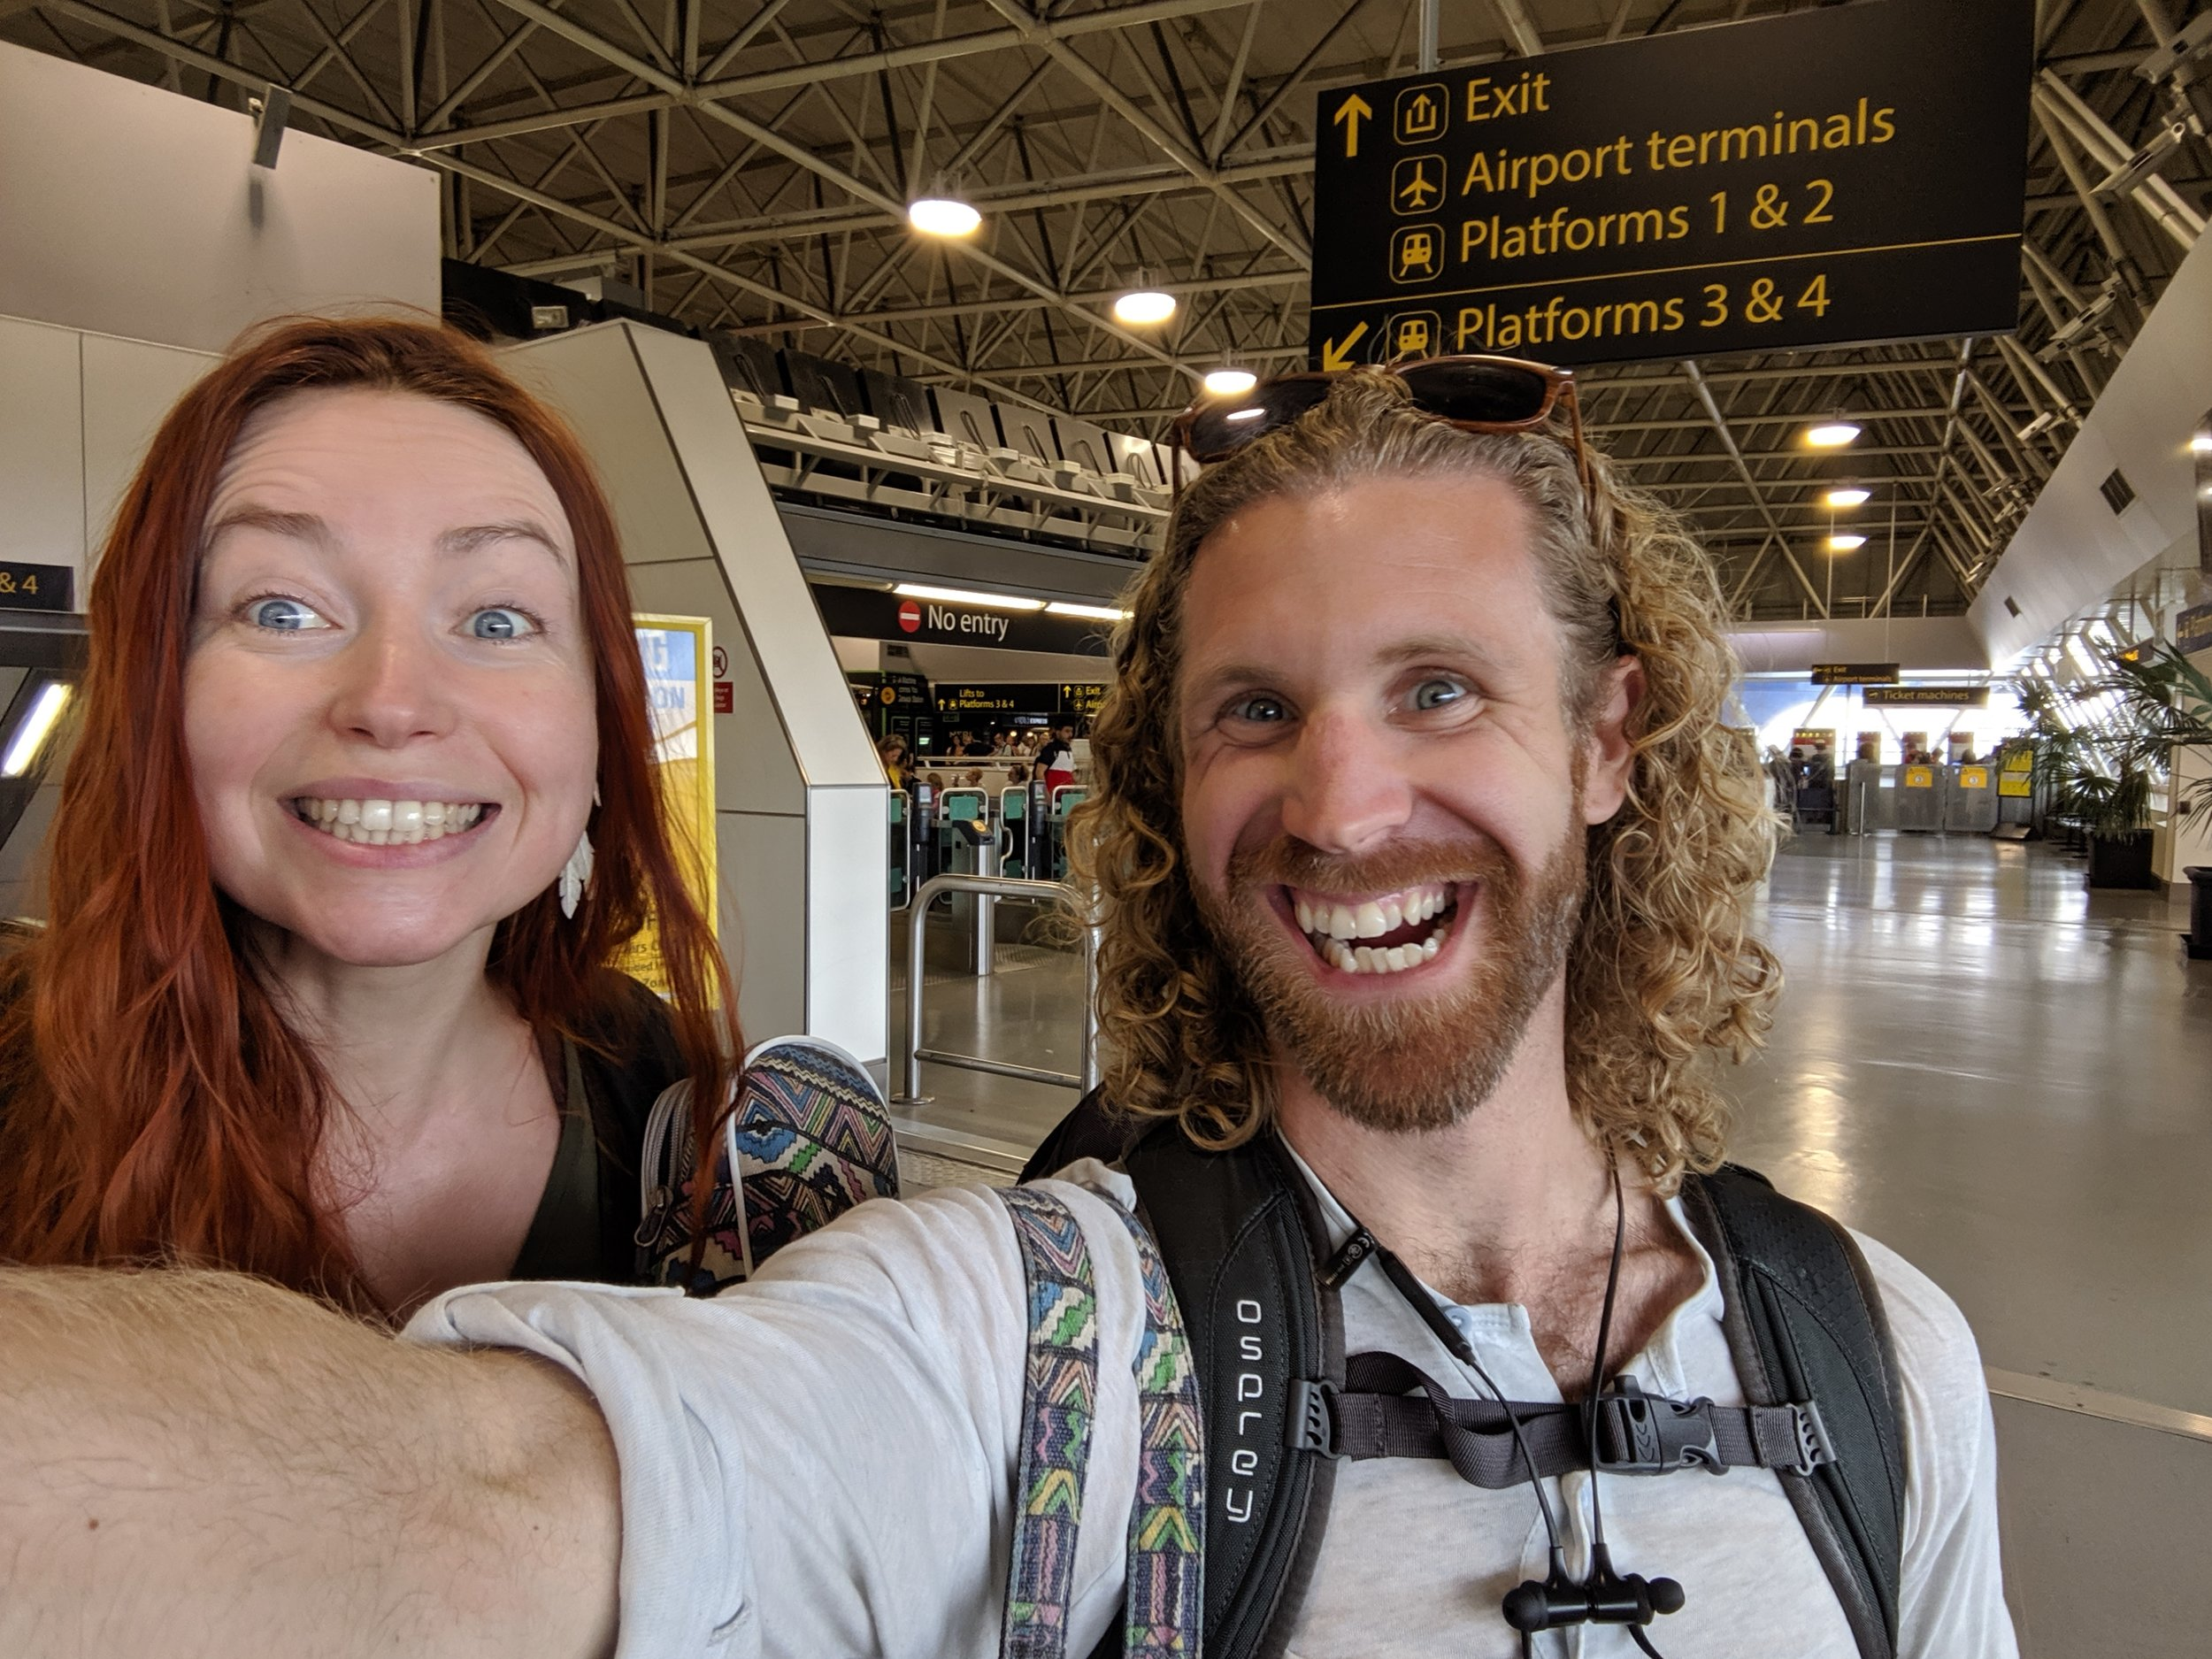 @Xerephine musica  Cead Mile Failte (a thousand thanks!) for your help navigating London airport and train systems! Im obviously insanely excited about this synchronistic meeting haha! #crazyface